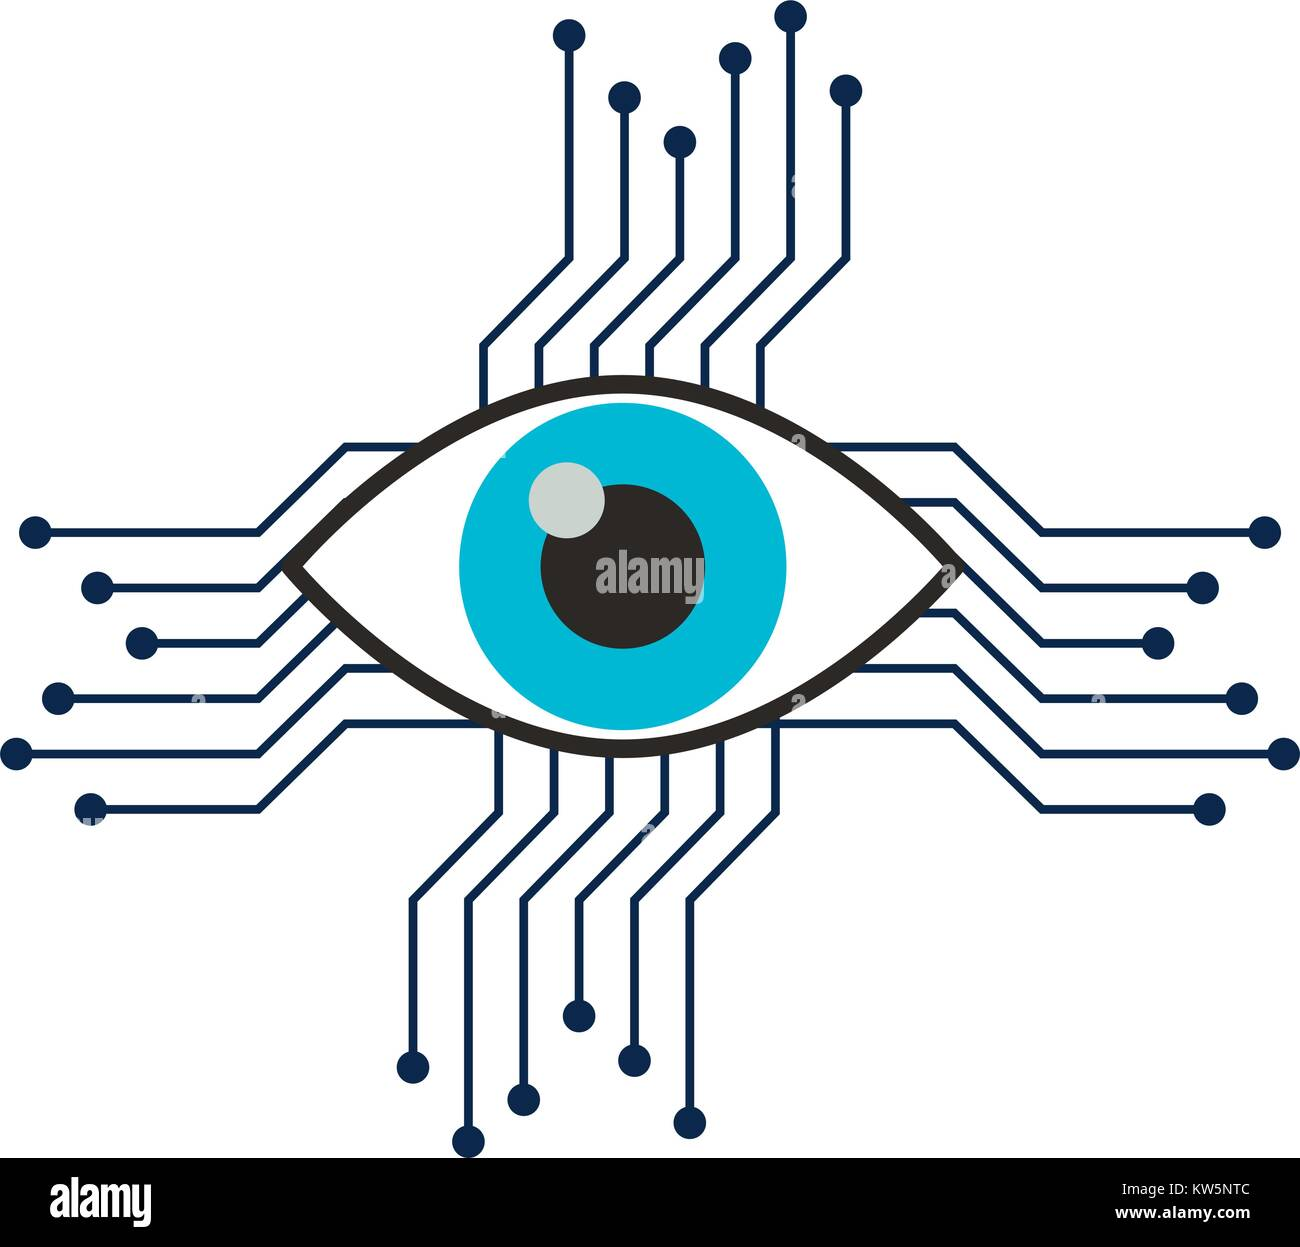 Vision Future Icon Stock Vector Images - Alamy